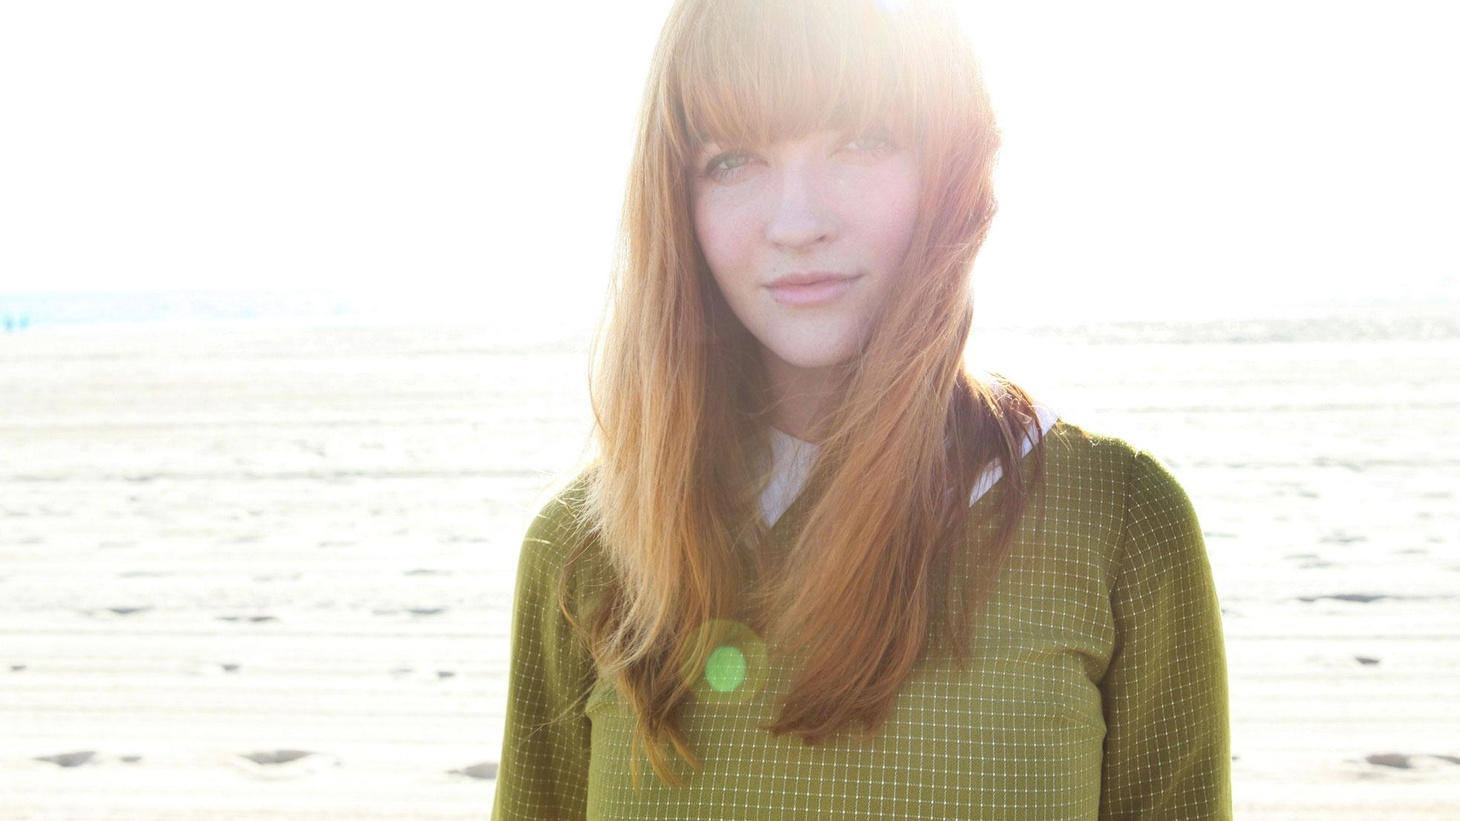 Katy Goodman plays bass and sings as part of the punk trio Vivian Girls and has stepped out on her own with a side project called La Sera.